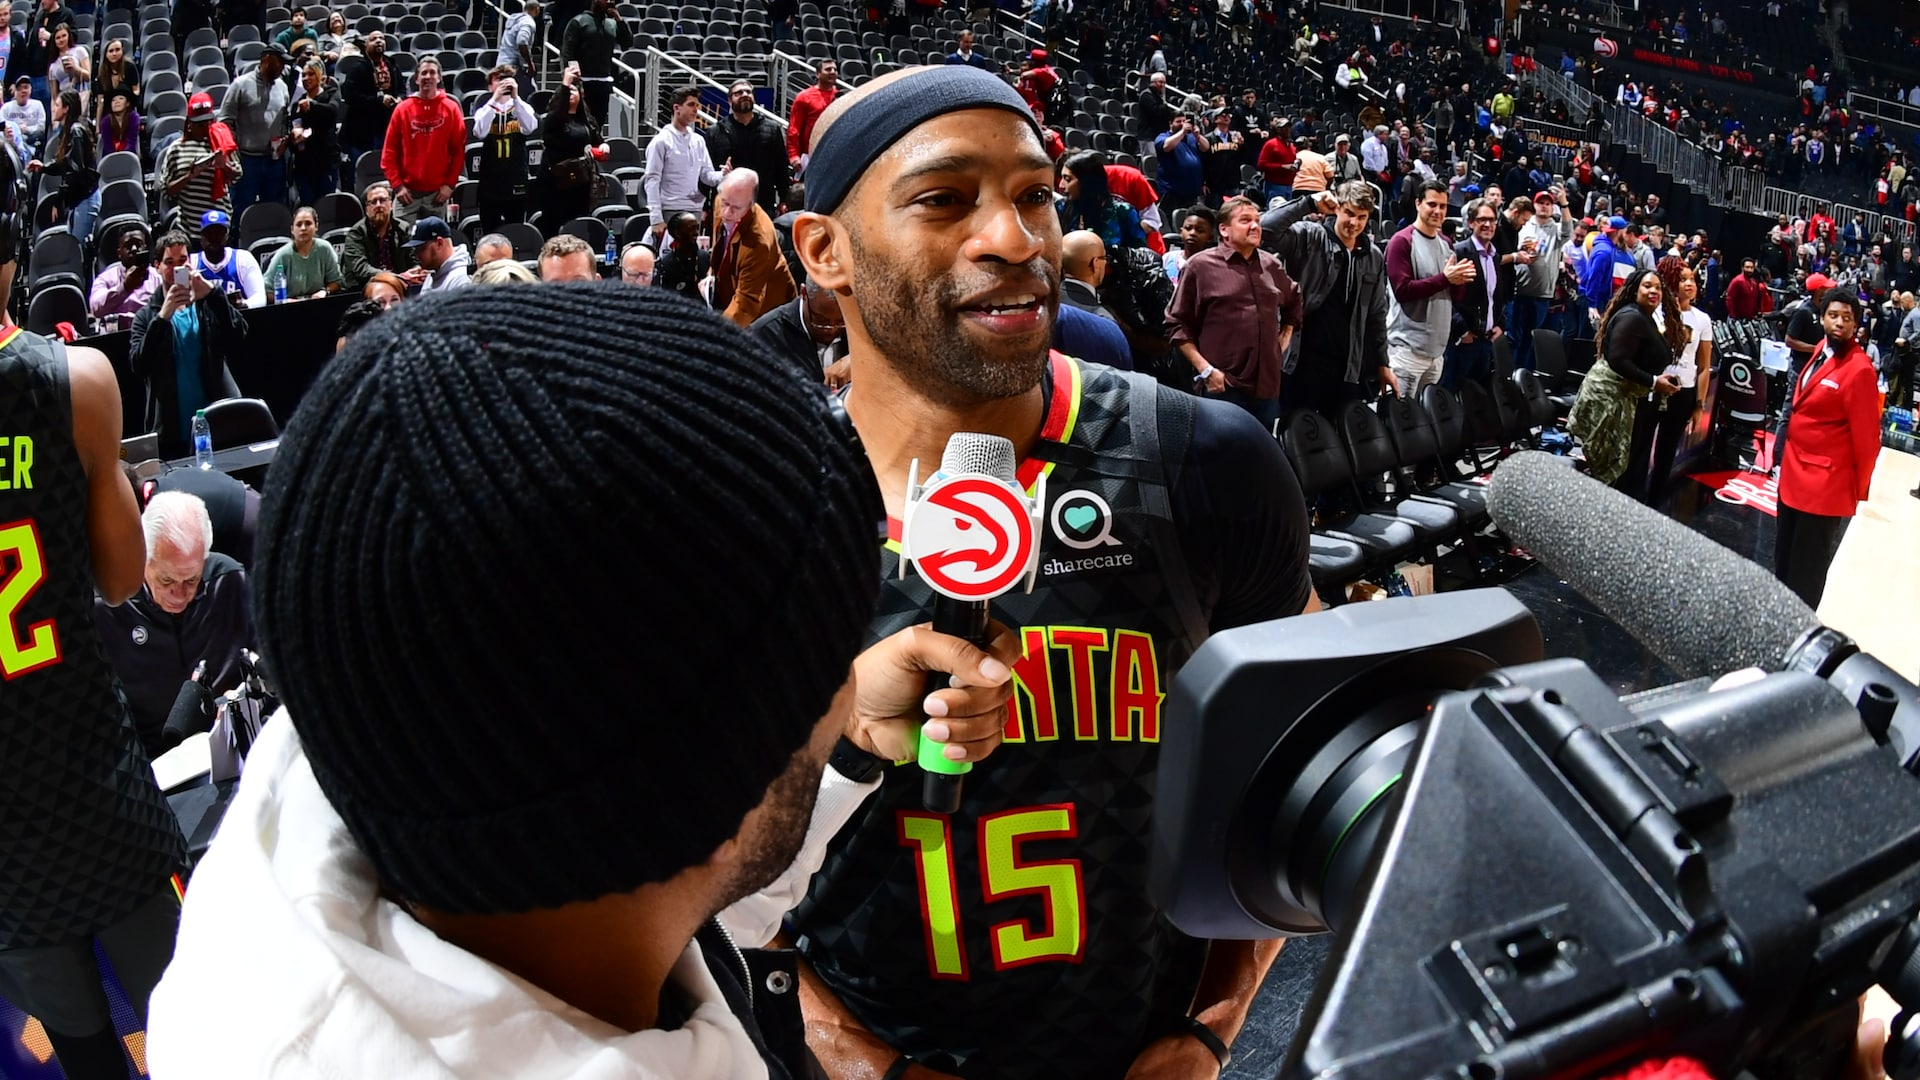 Vince Carter passes Dirk Nowitzki for third all-time in games played